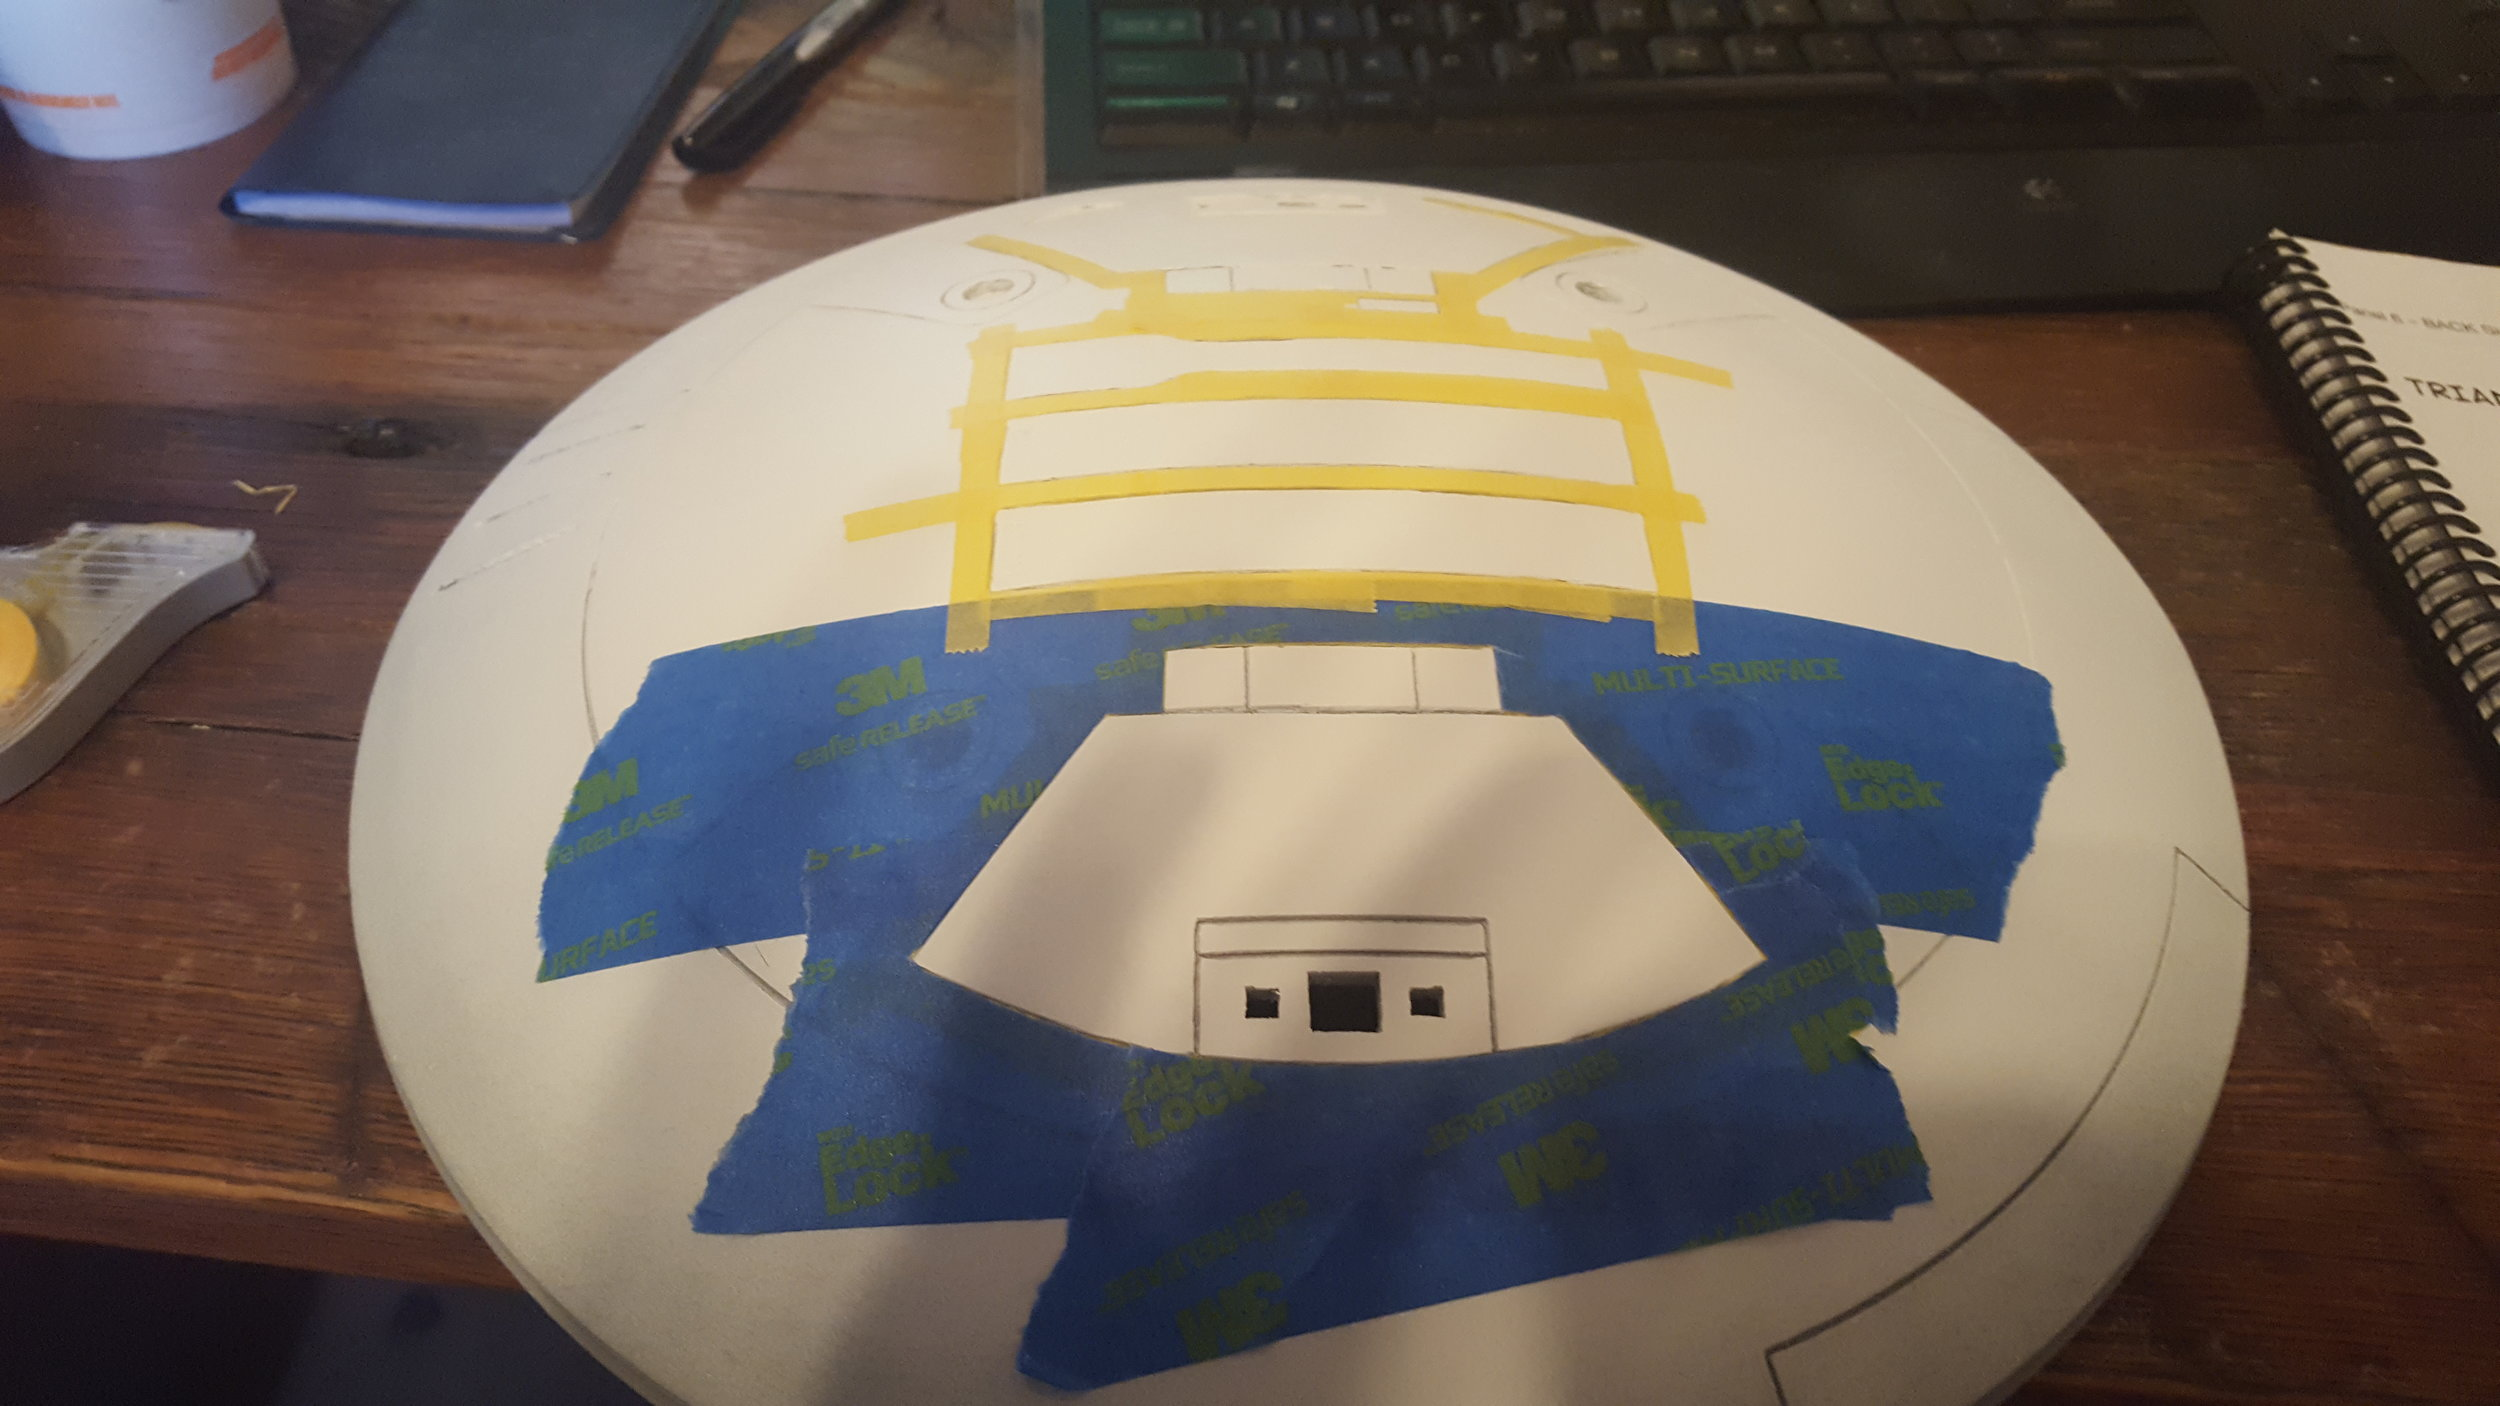 I began masking off for the silver. The yellow tape is a 6mm Tamiya masking tape which I really cant recommend enough. The small size lets you really get i there for the details and holds really well. The blue is just standard painters tape to cover off the big sections.